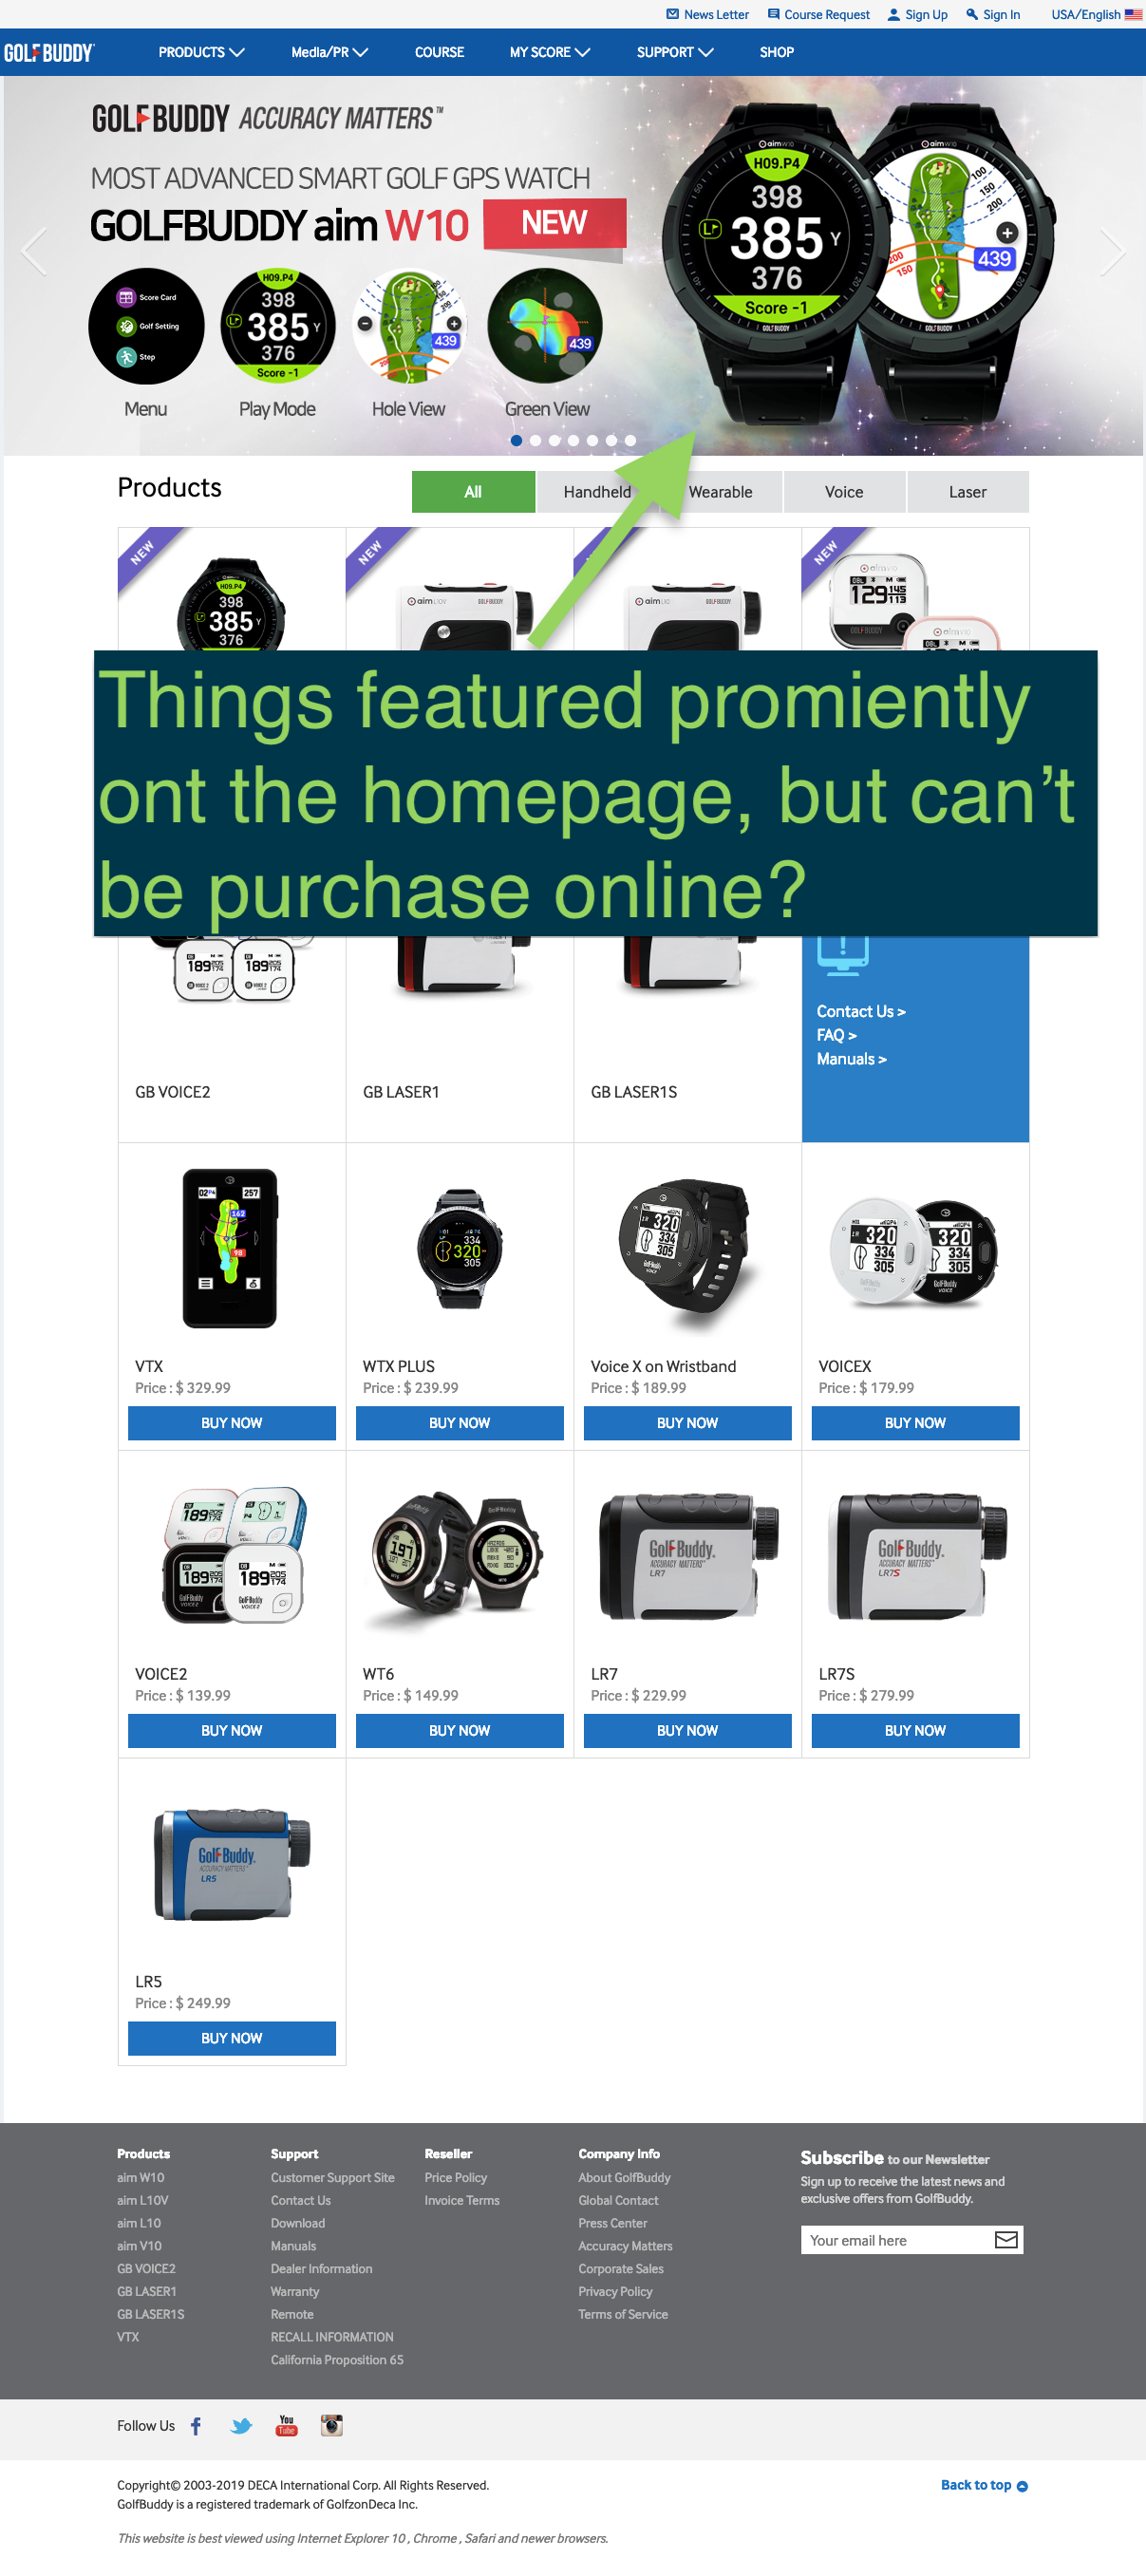 screencapture-golfbuddyglobal-products-2019-02-27-09_39_10.png